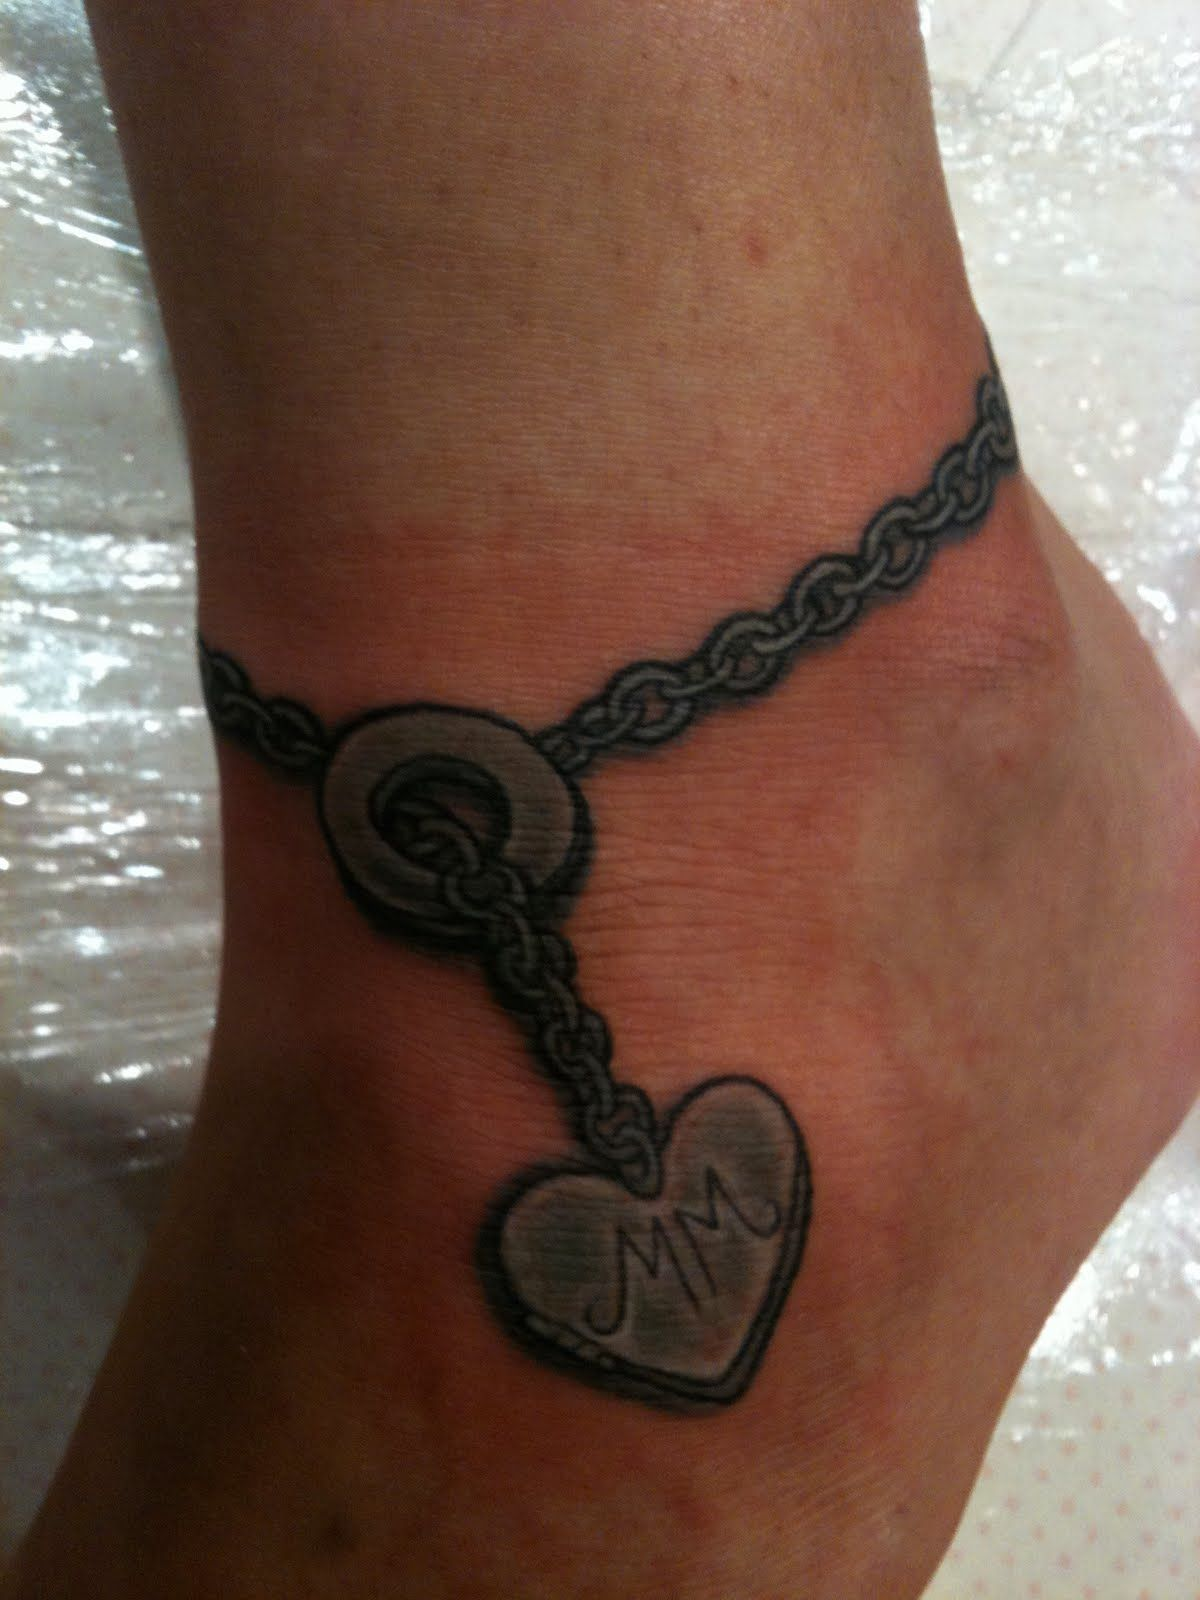 Thinking something similar to this with two hearts with kidsu names